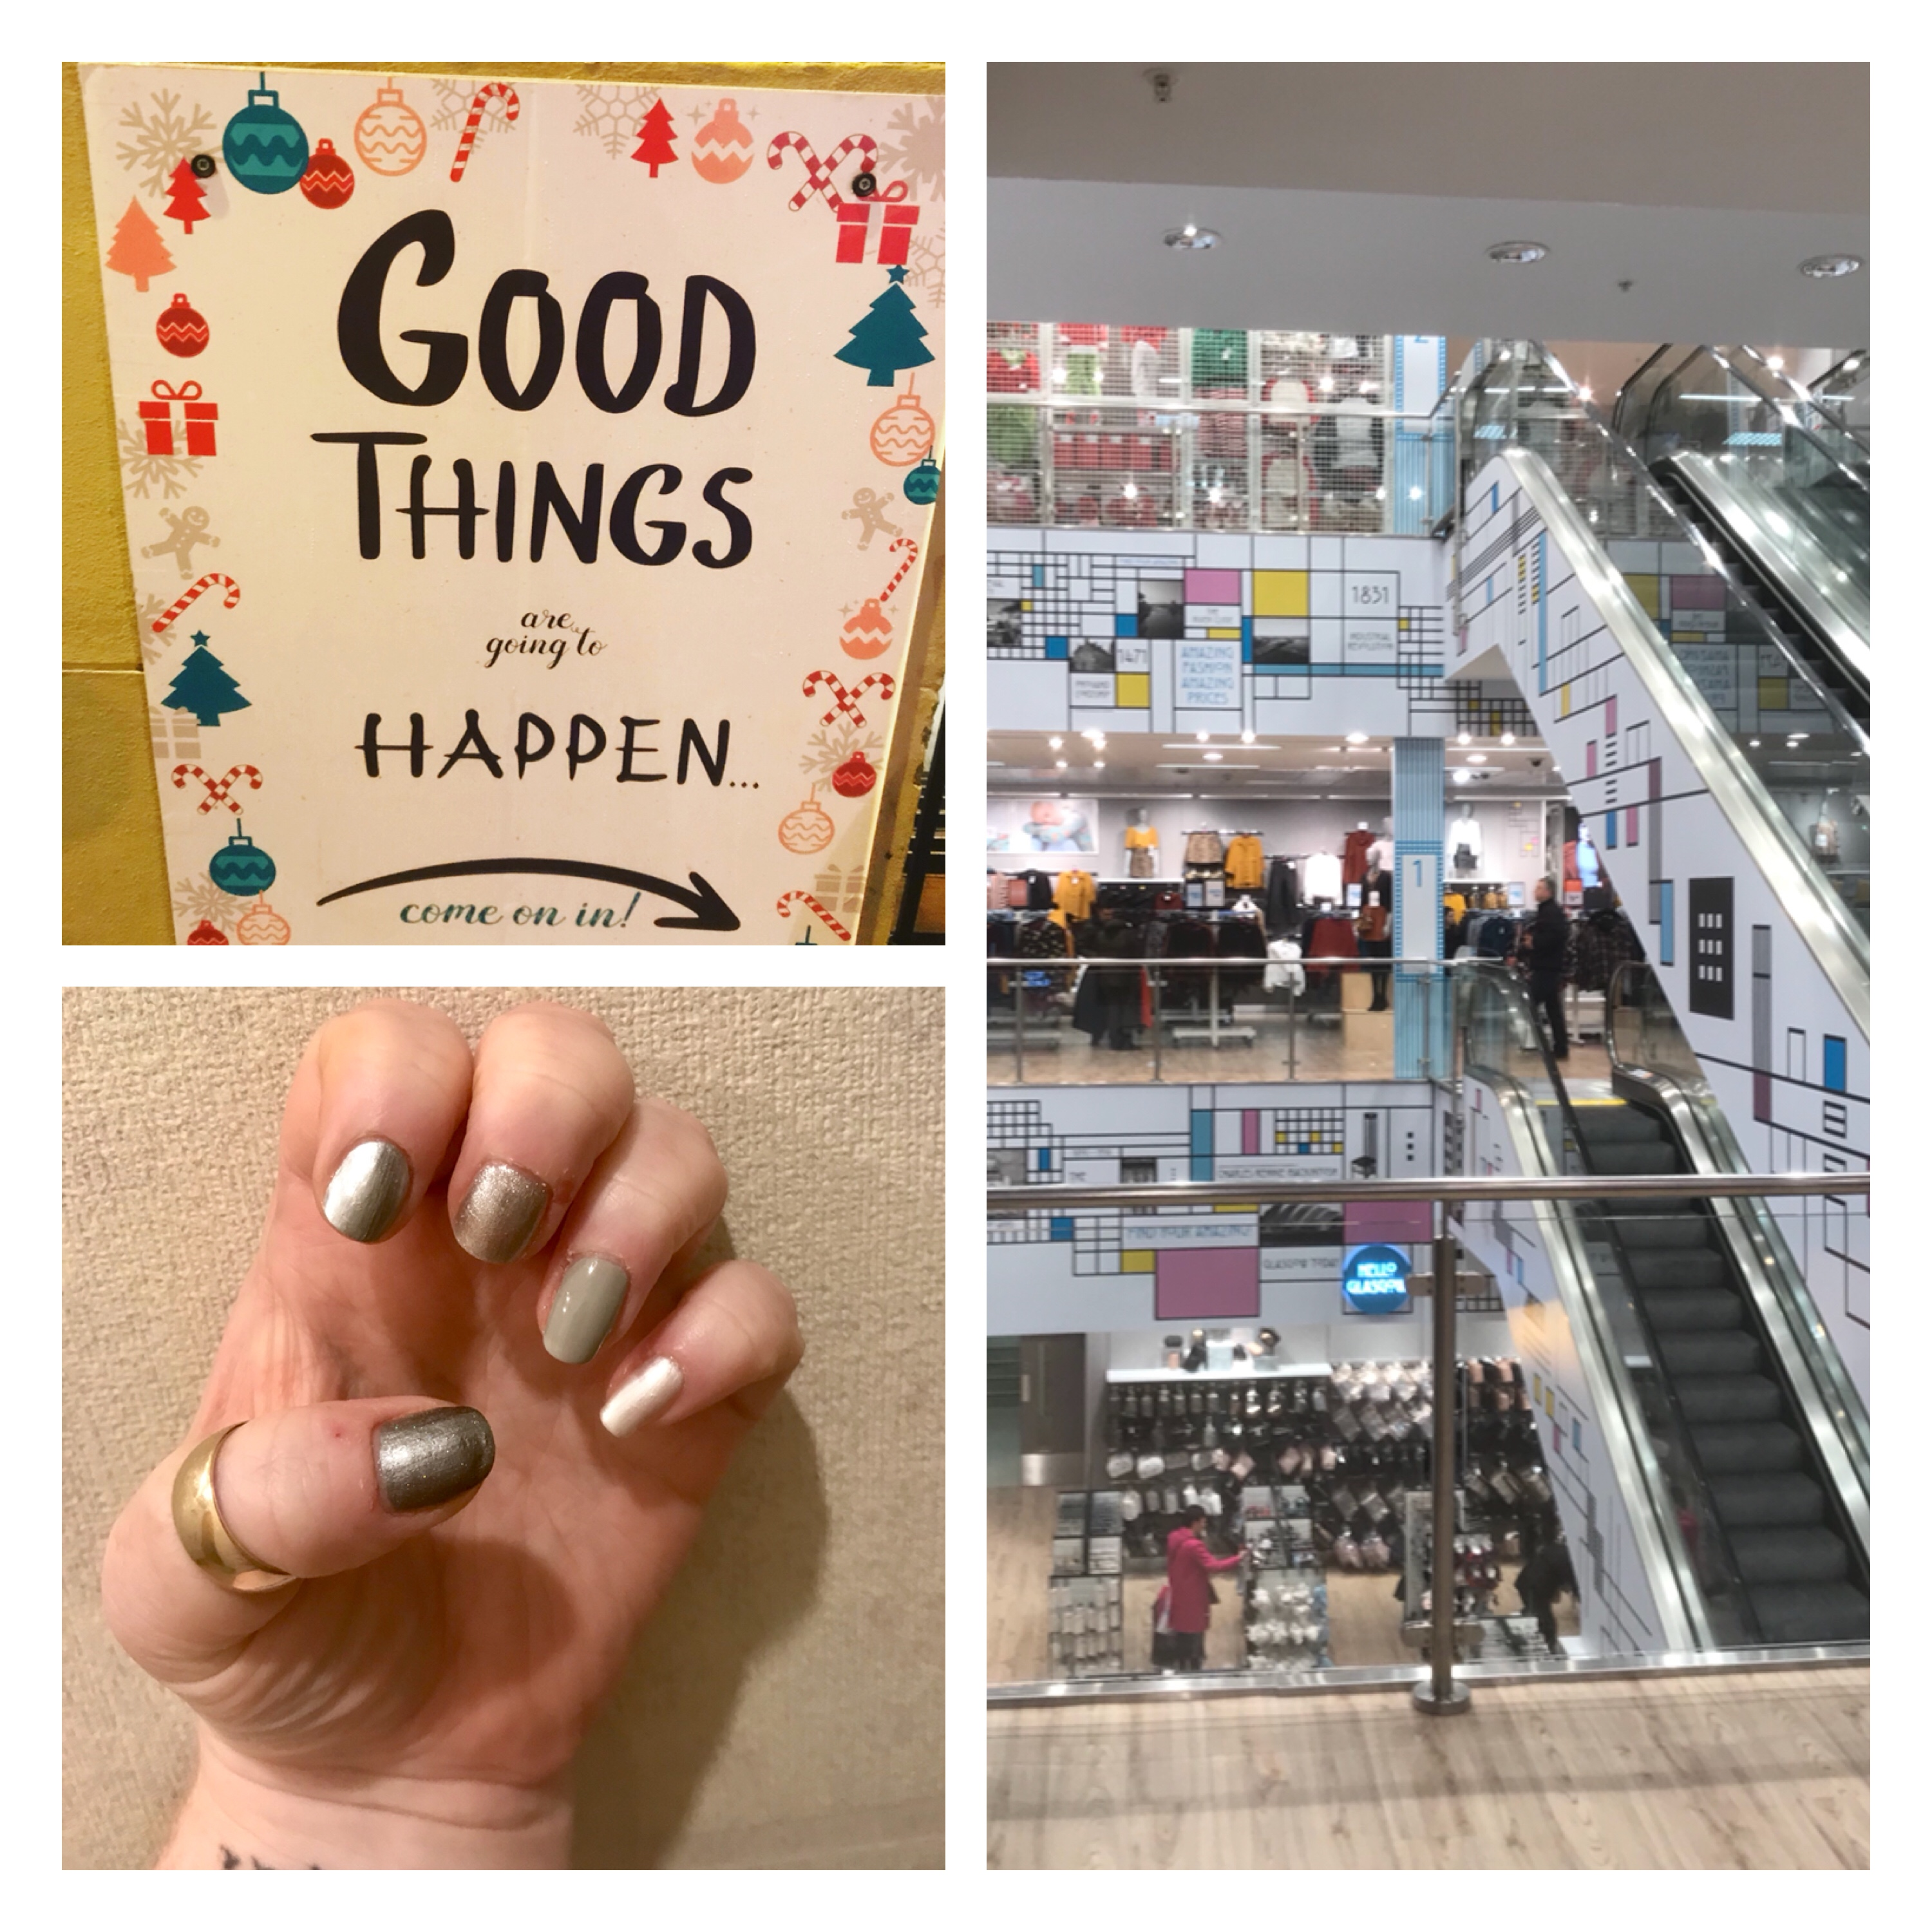 Good things, primark Glasgow